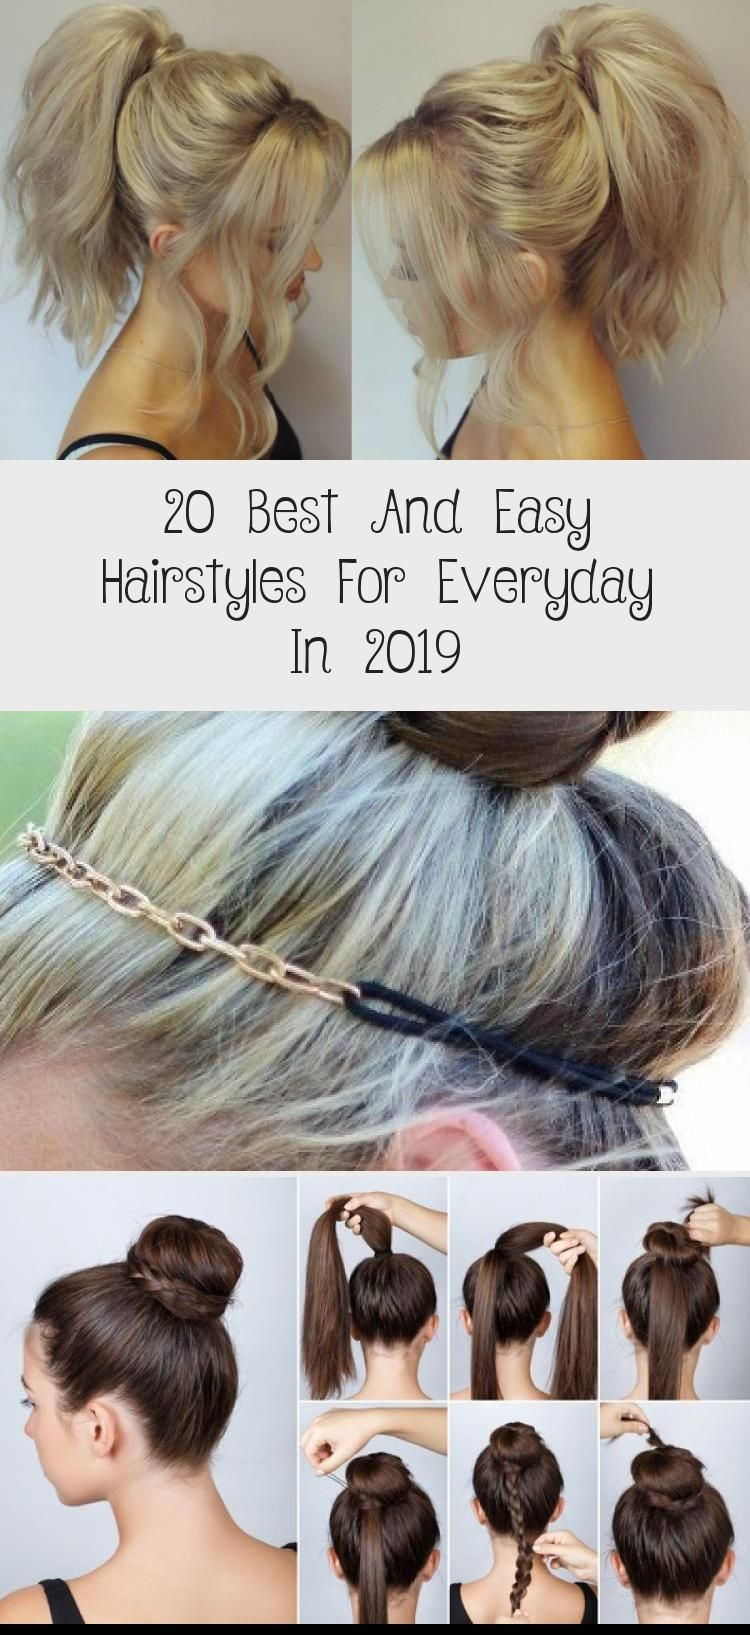 Top 17 Casual Hairstyles For Everyday Everydayhairstylesdiy Everydayhairstylesforwork Everydayhairstyle In 2020 Hair Styles Easy Everyday Hairstyles Easy Hairstyles